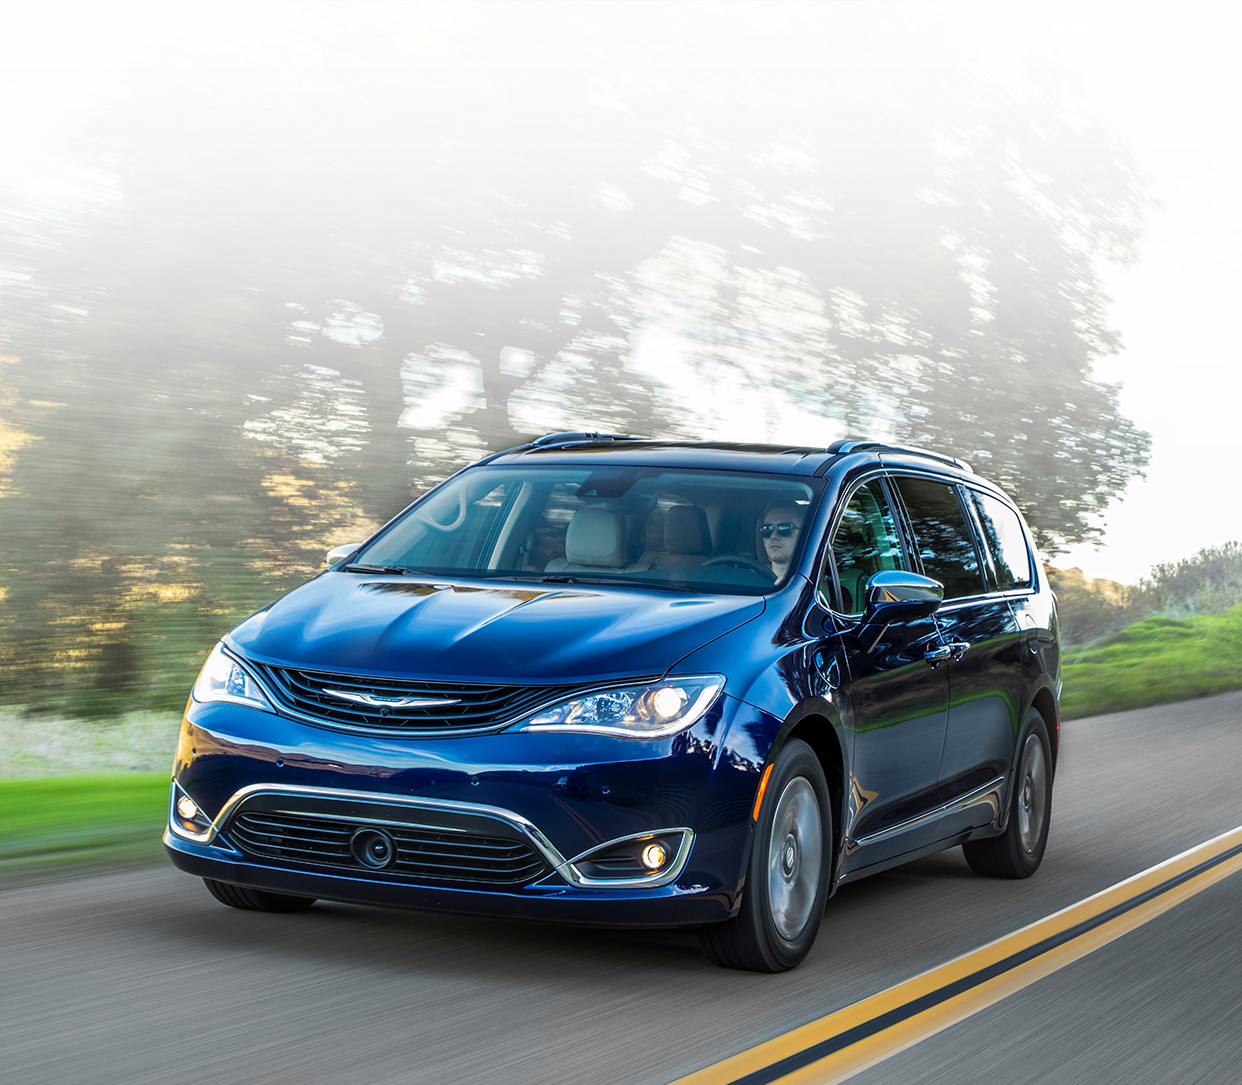 Chrysler Pacifica Hybrid 2018, Front View, Jazz Blue Pearl